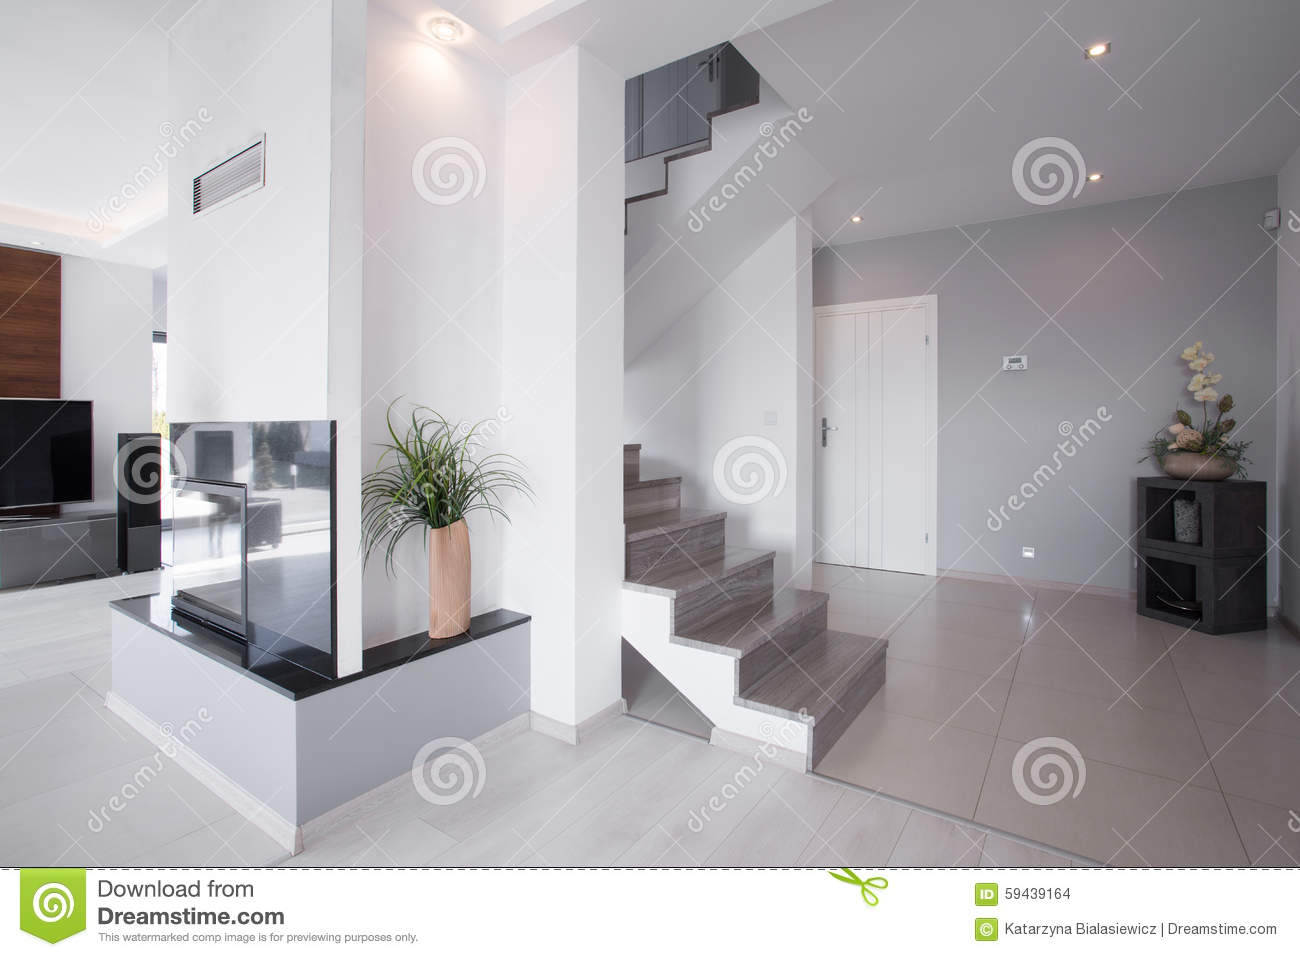 Moderne trap in modieus huis stock foto afbeelding 59439164 - Foto moderne trap ...